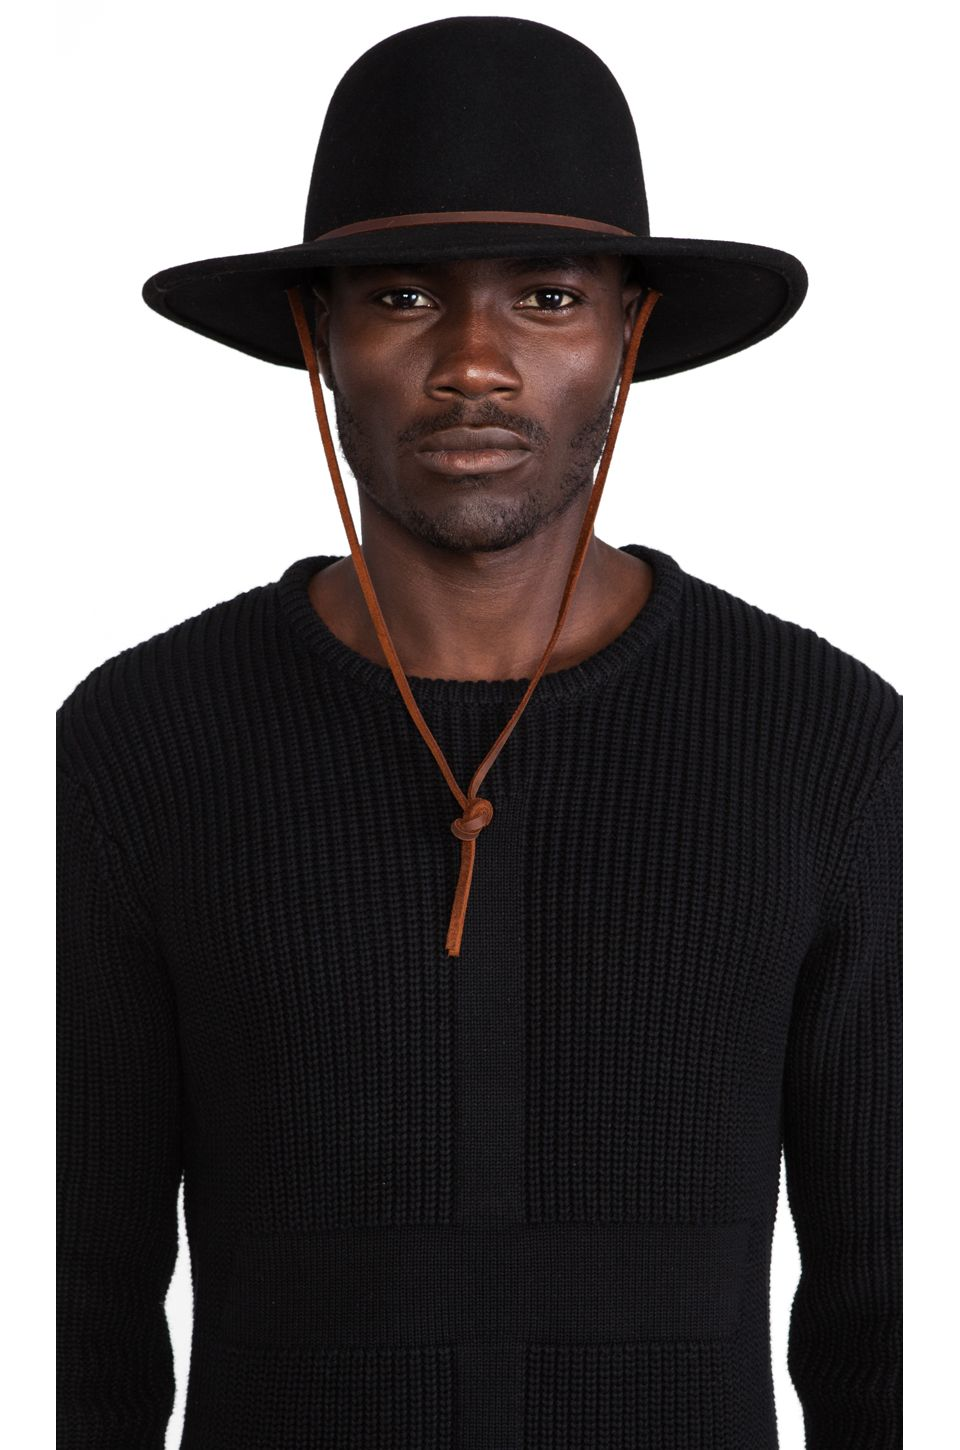 brixton tiller wide brim hat in black | revolve | wardrobe